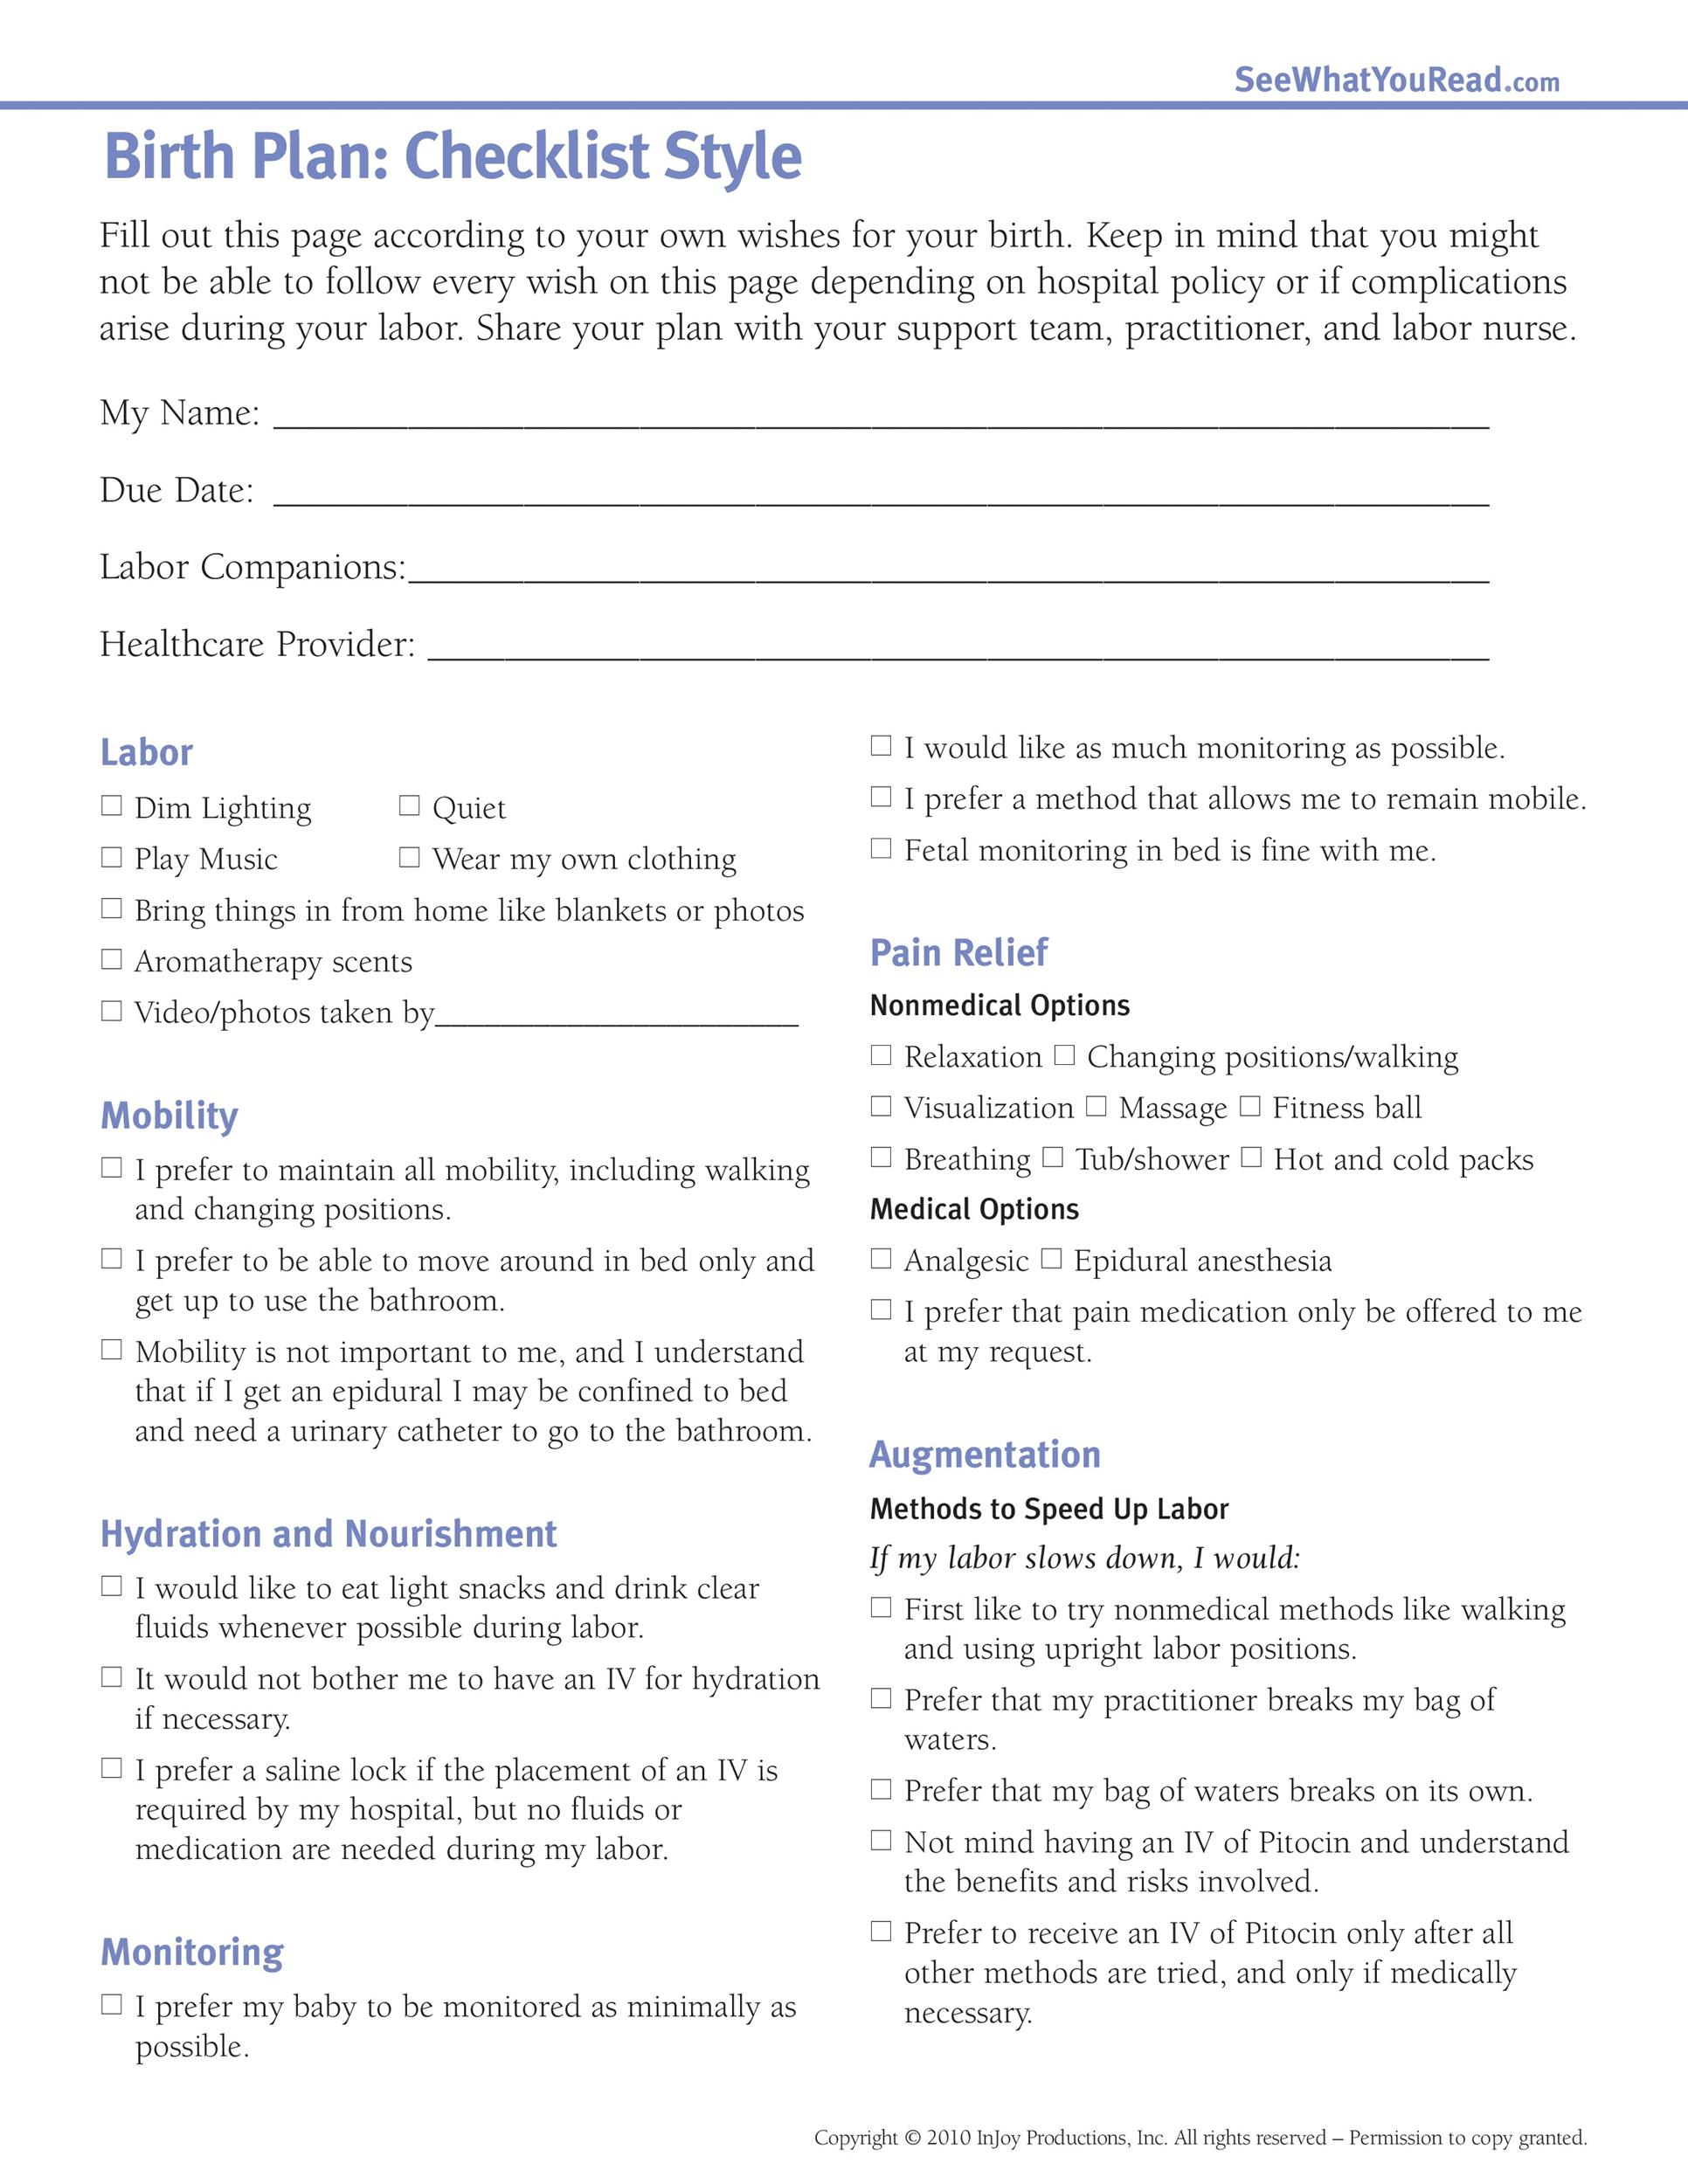 47 Printable Birth Plan Templates Birth Plan Checklist Template Lab